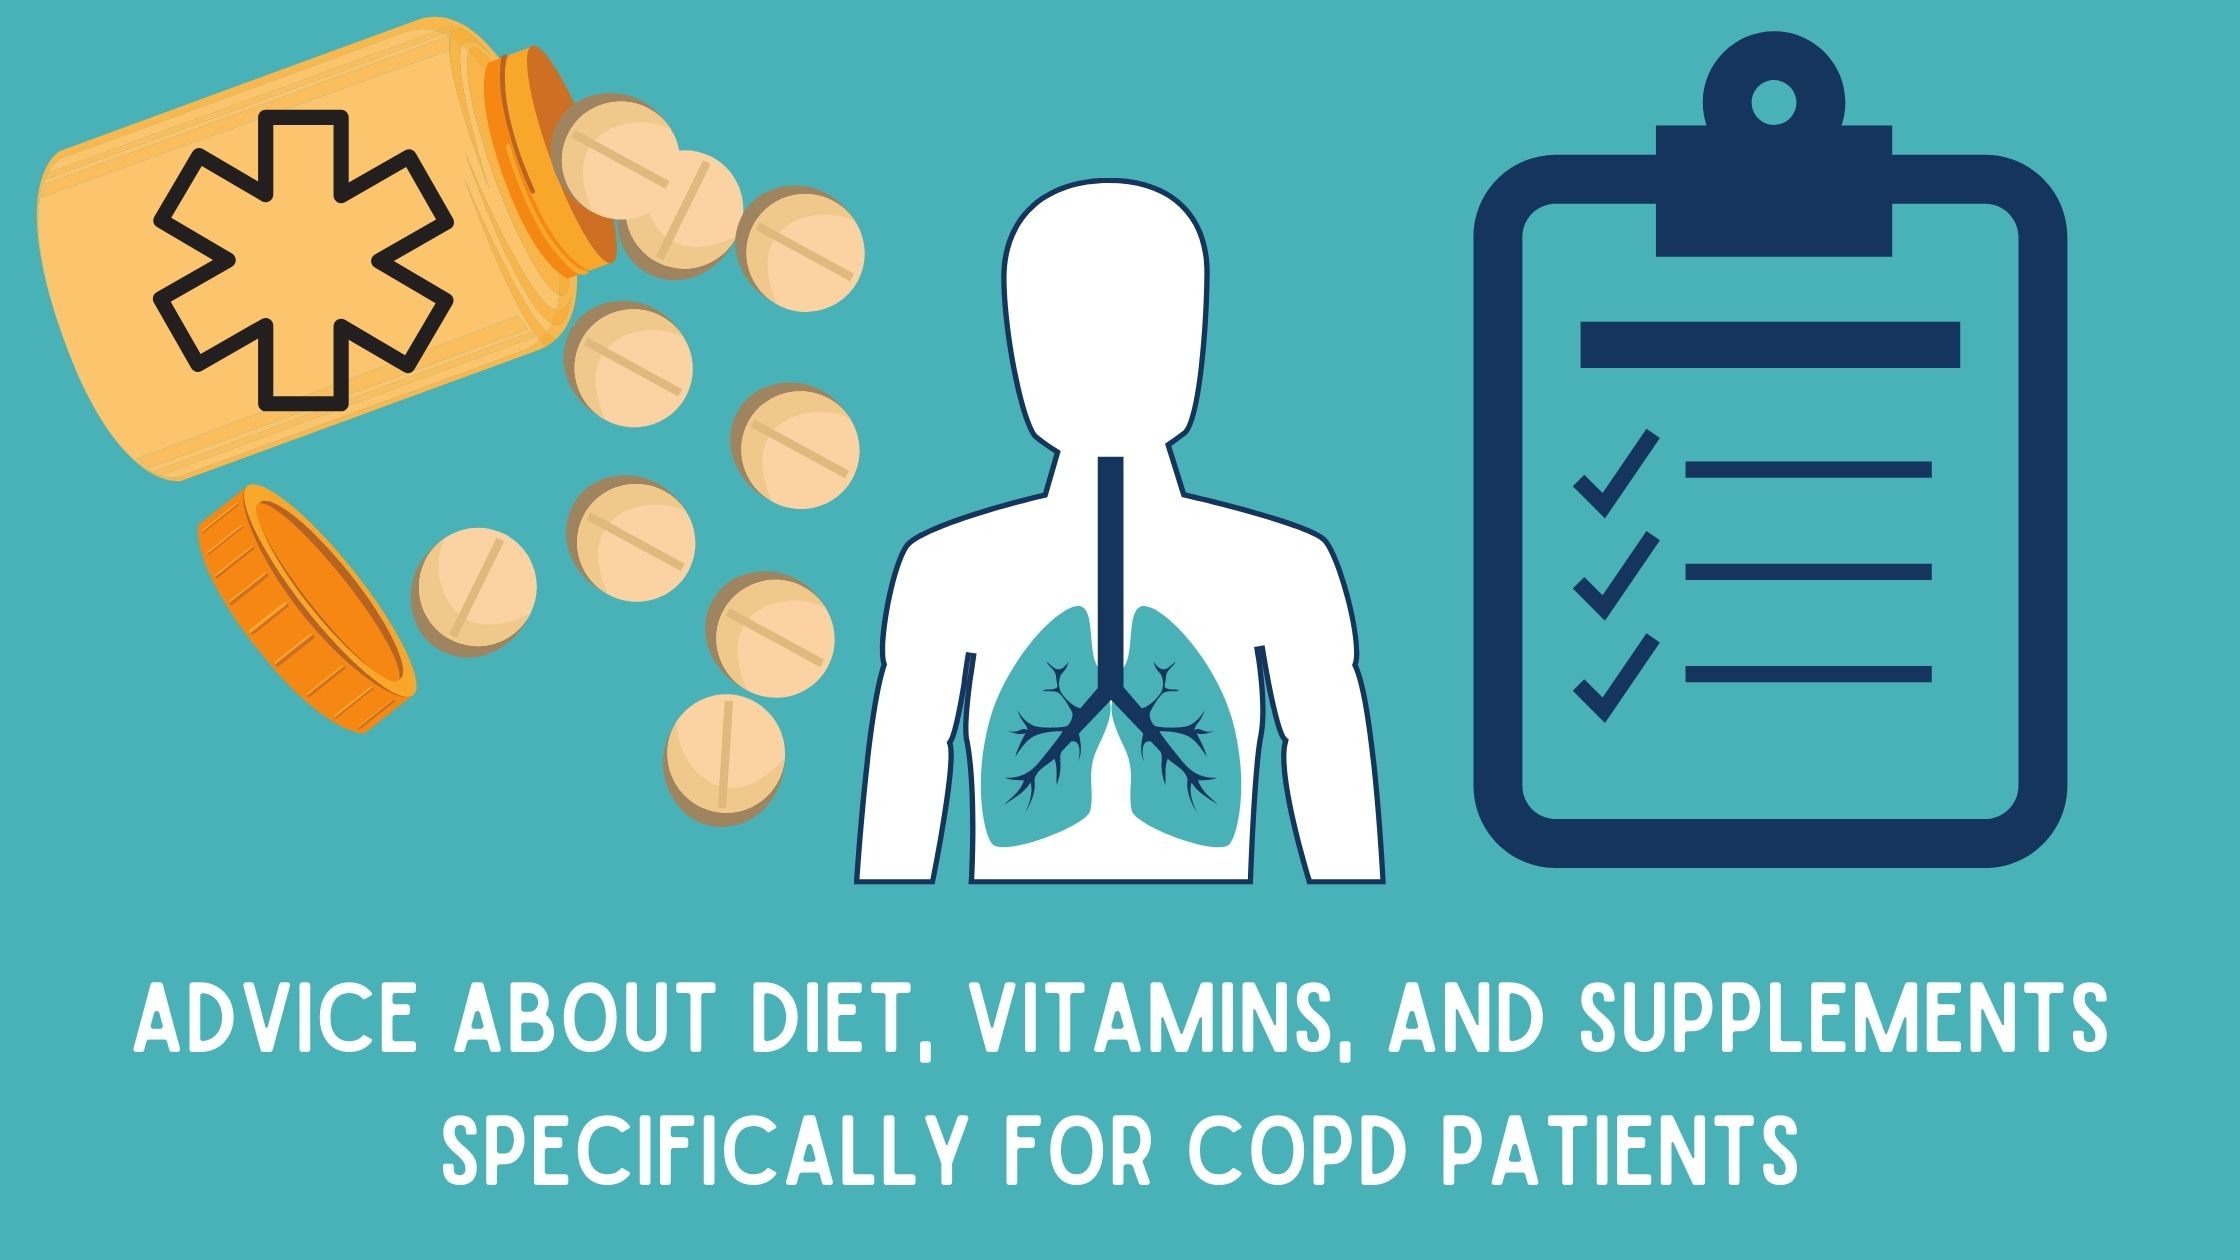 Advice about Diet, Vitamins, and Supplements Specifically for COPD Patients